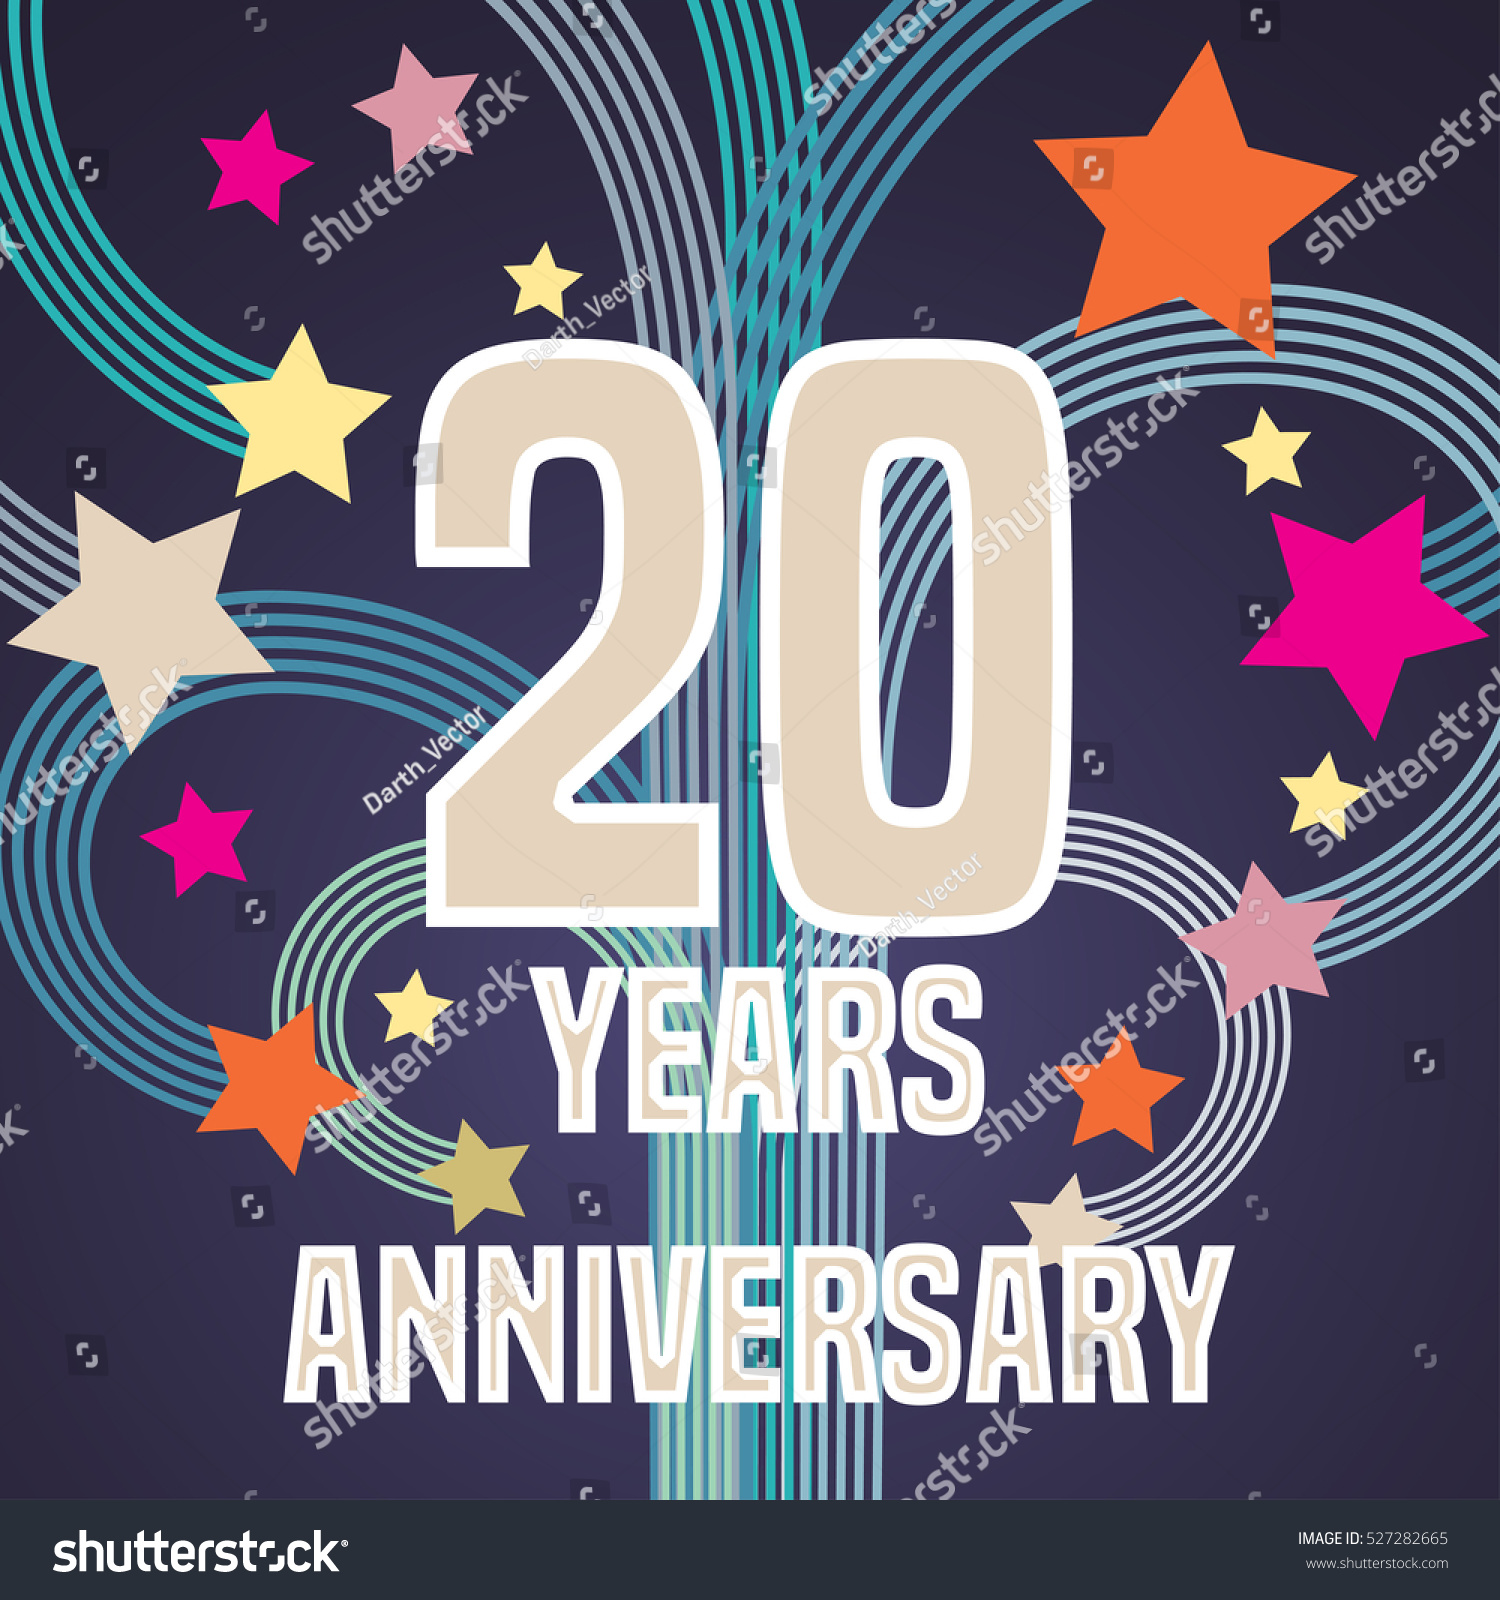 20 Years Anniversary Vector Illustration Banner Stock Vector